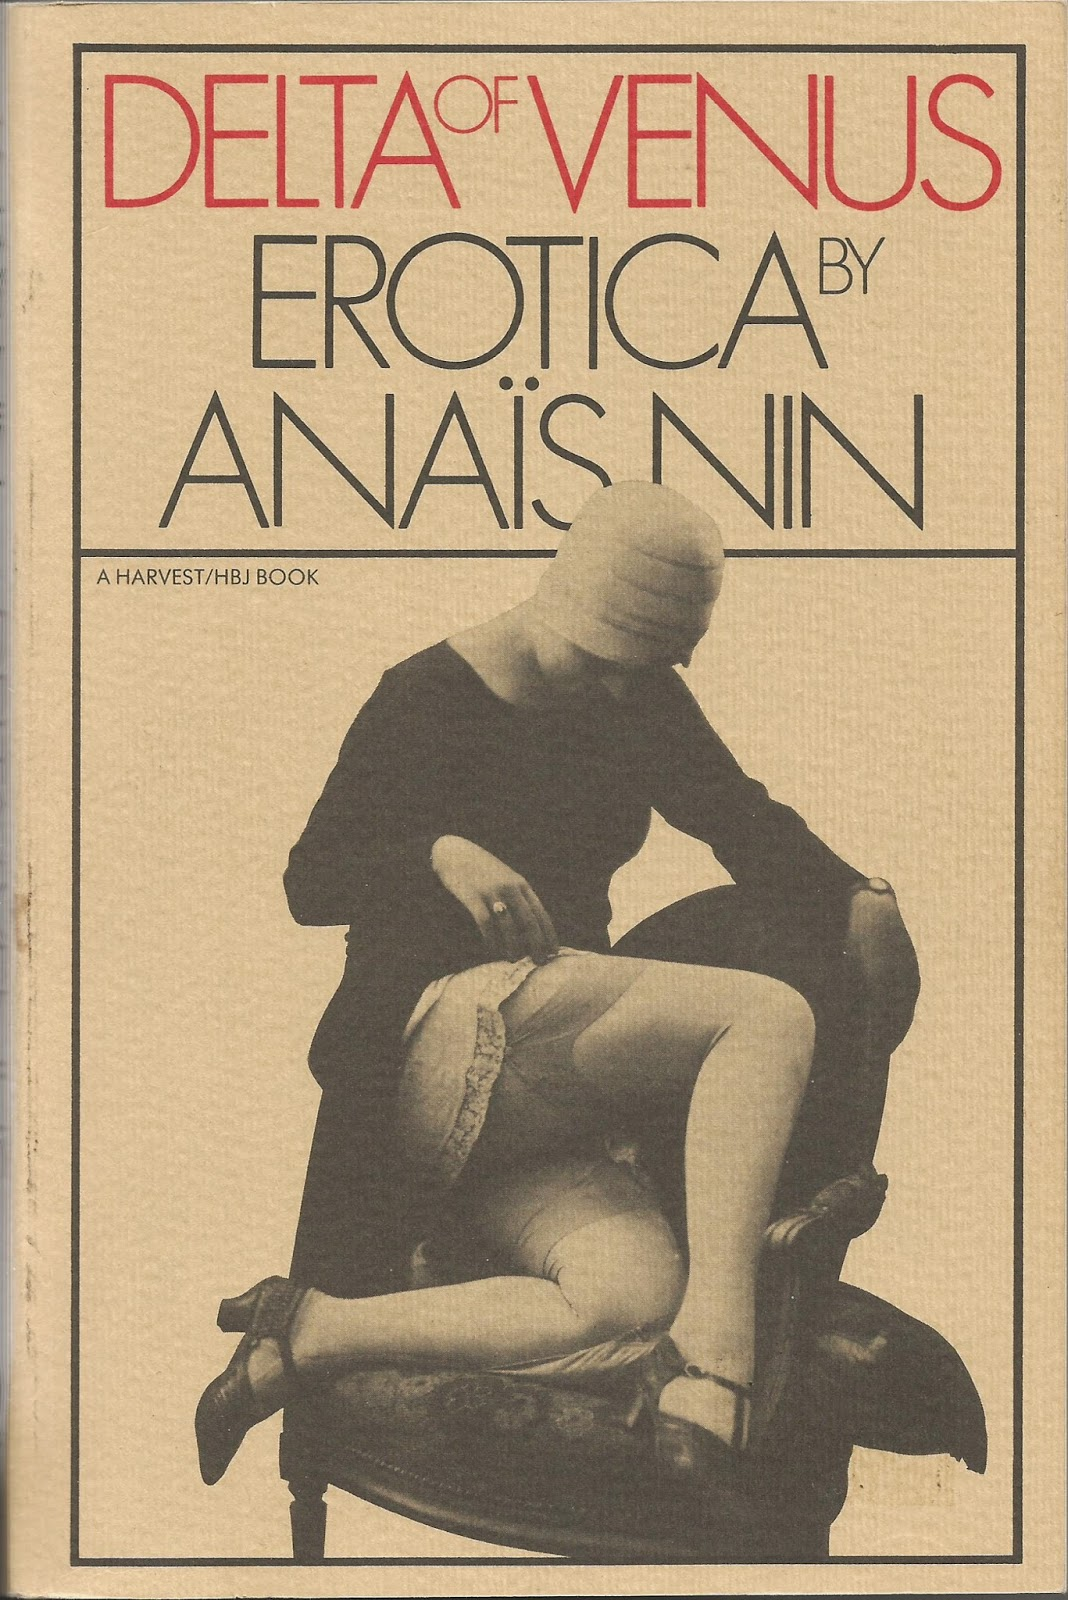 invisible erotic stories